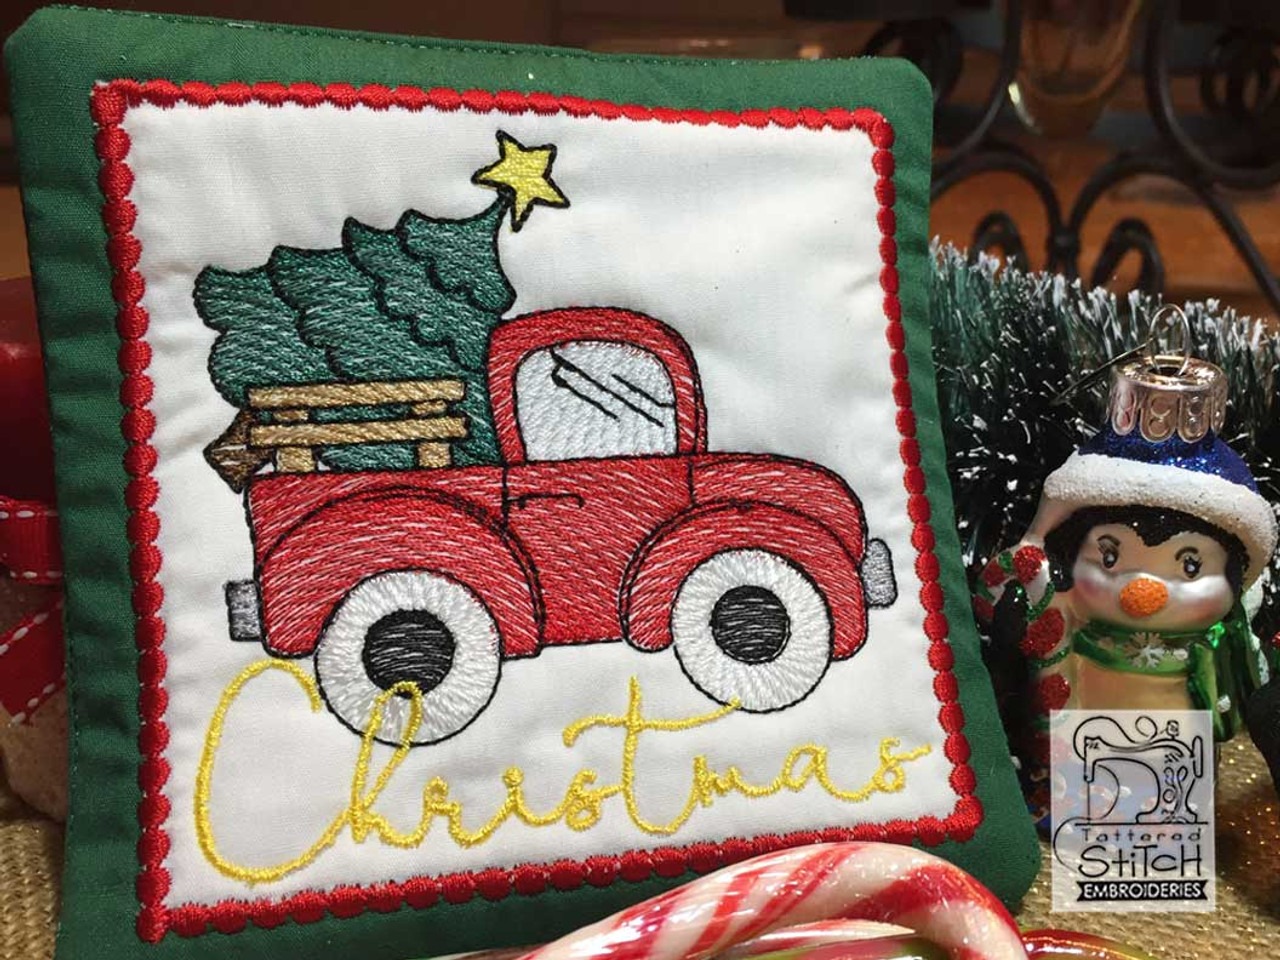 Red Truck Christmas Coaster Fits A 5x7 Hoop Machine Embroidery Designs Tattered Stitch Embroideries